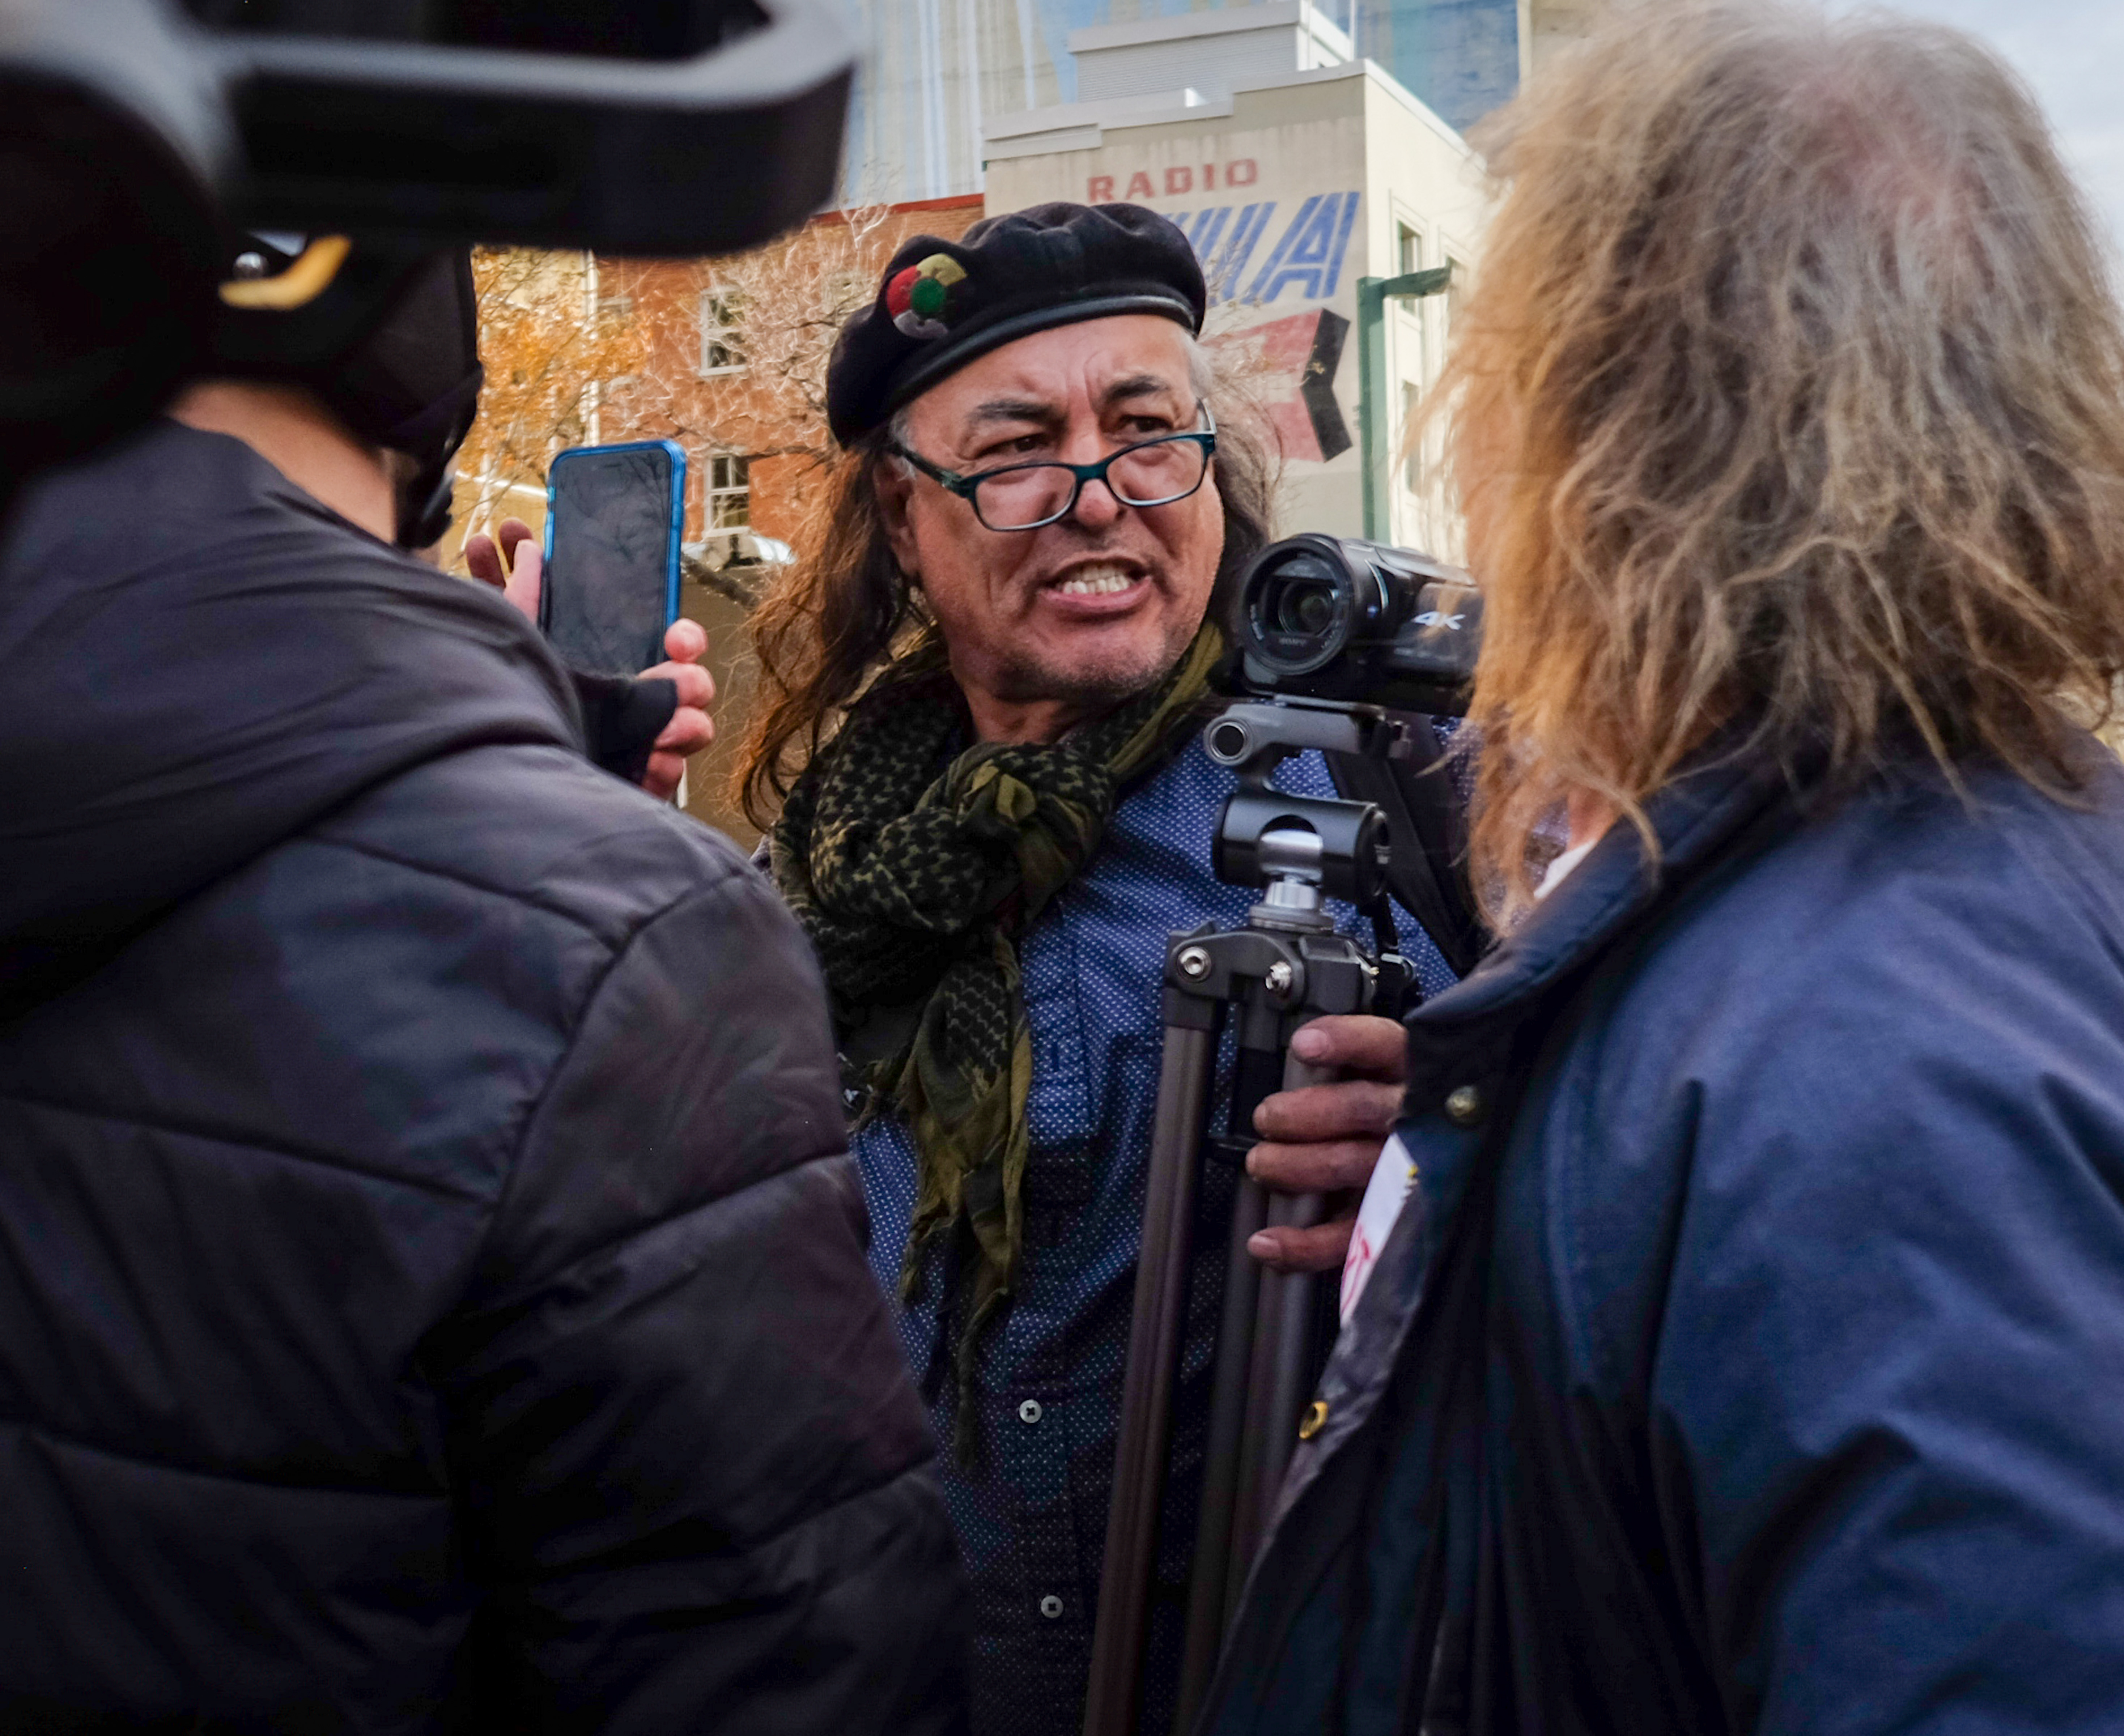 hedy bach images - climate strike - 17-2